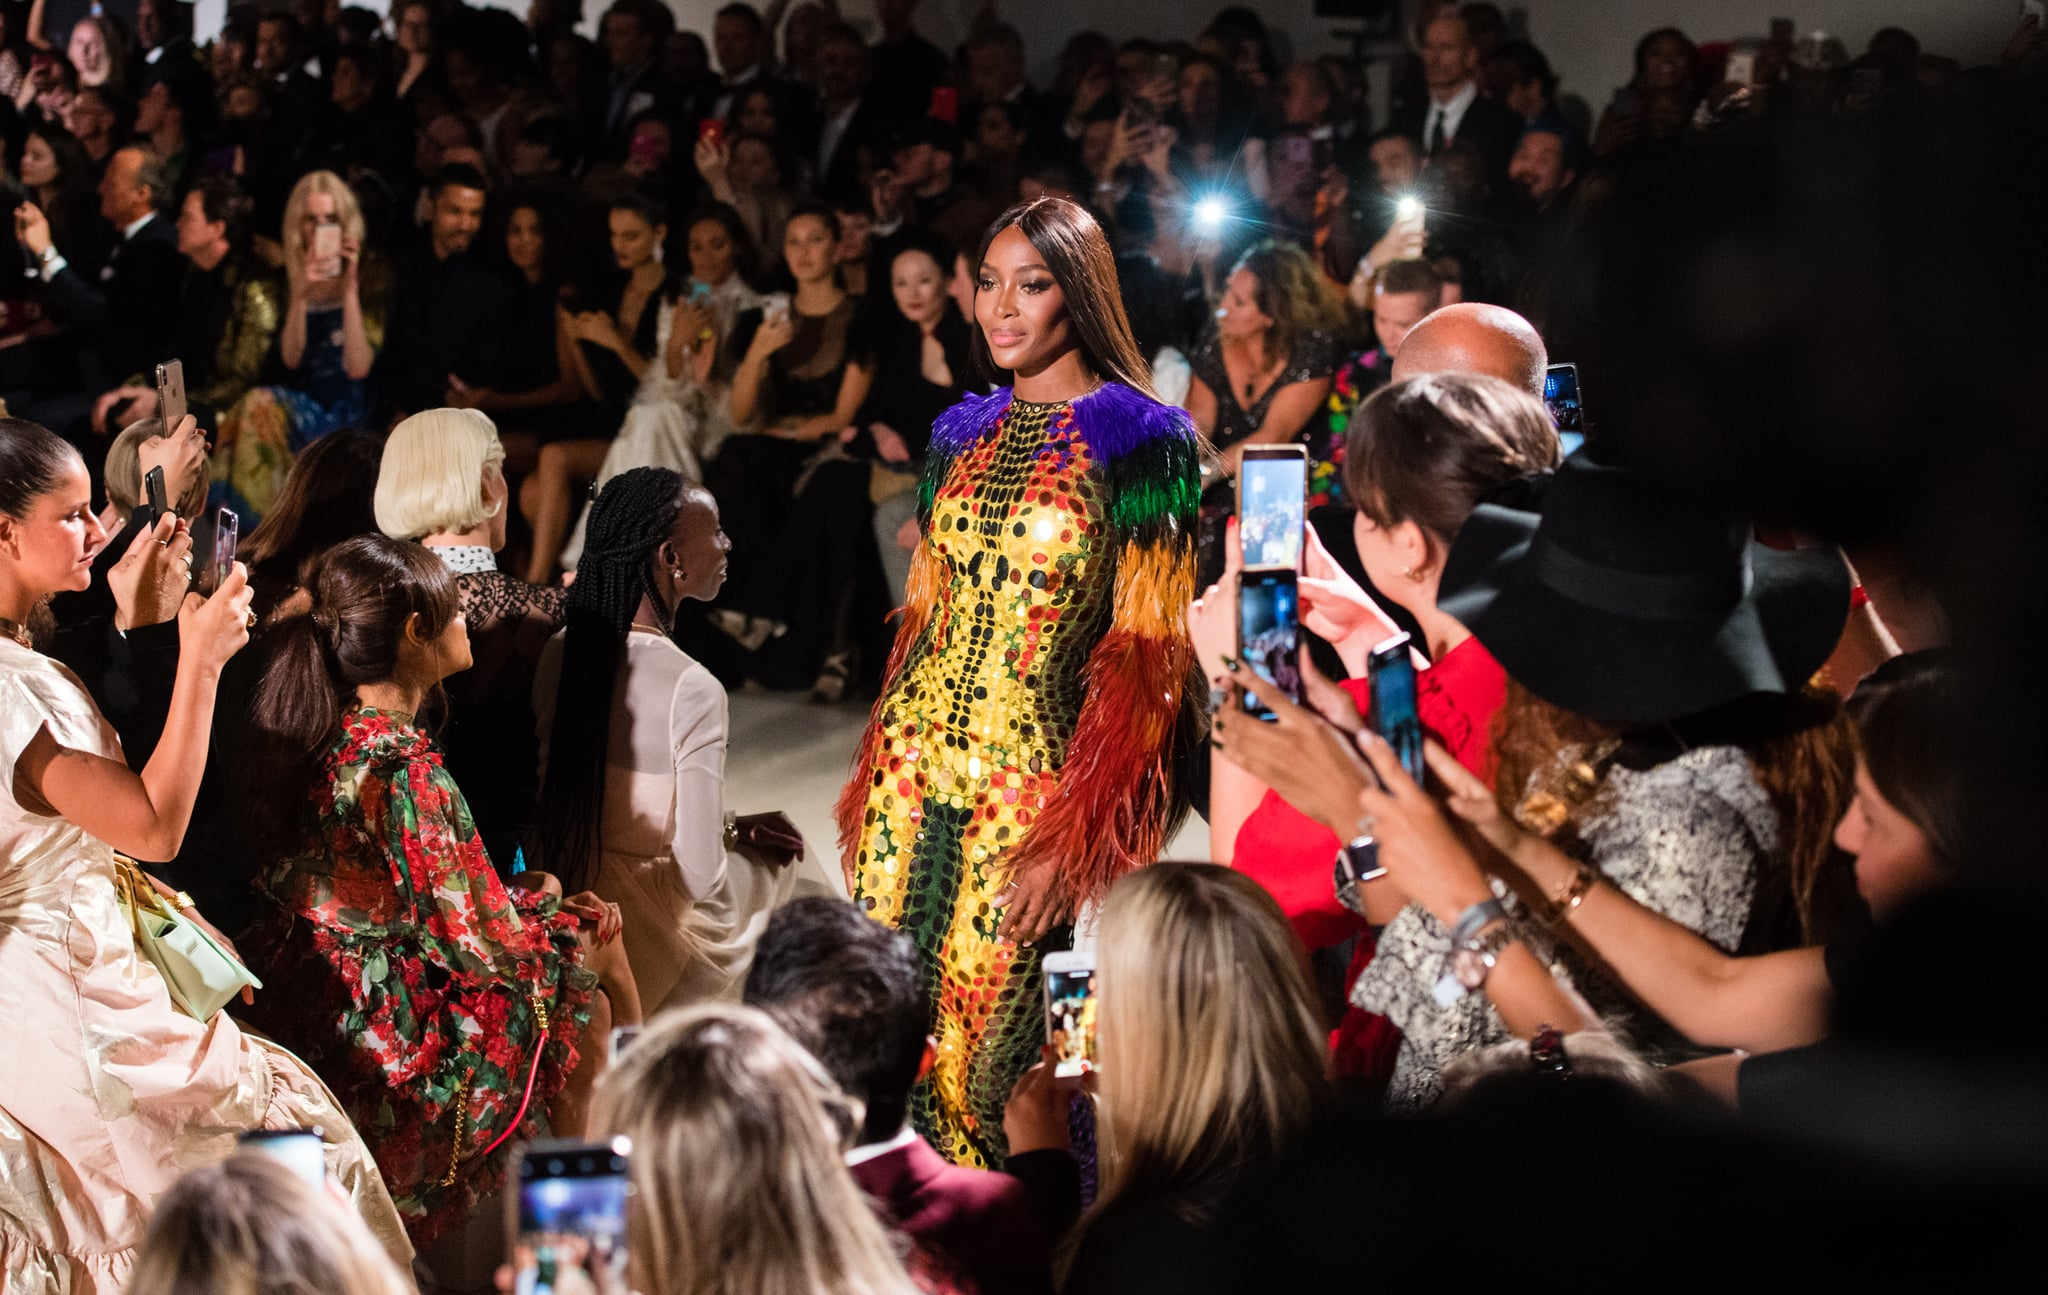 LONDON, ENGLAND - SEPTEMBER 14: Naomi Campbell walks the runway at the Fashion for Relief show during London Fashion Week September 2019 on September 14, 2019 in London, England. (Photo by Samir Hussein/WireImage)